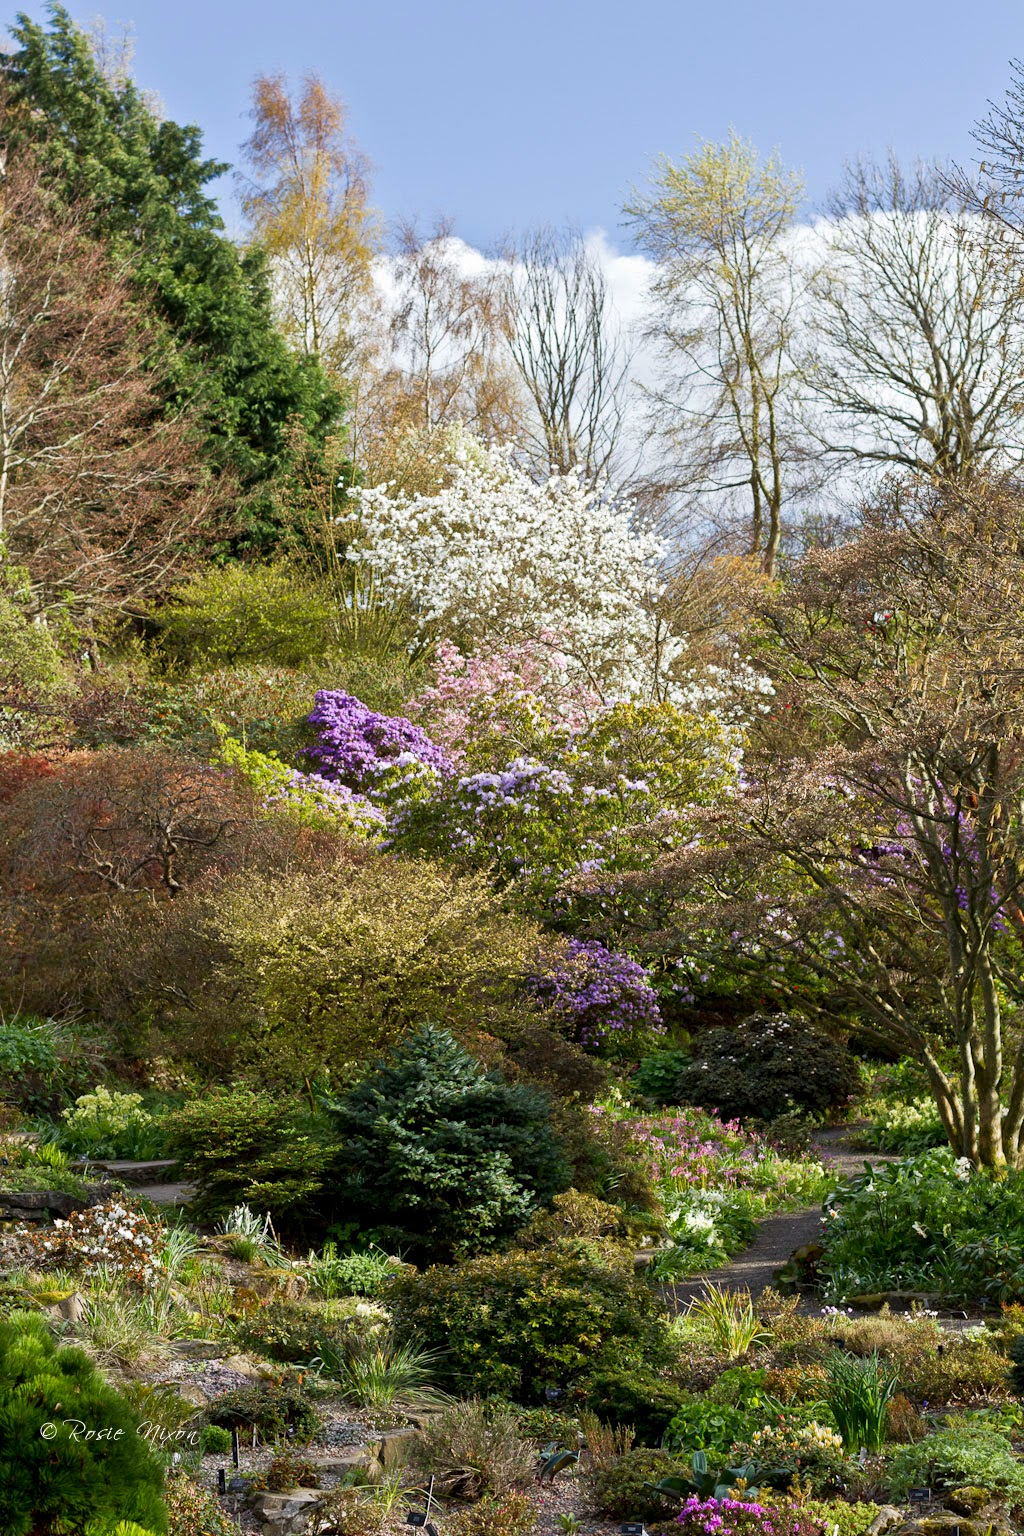 Branklyn garden in April with the rhododendron colours